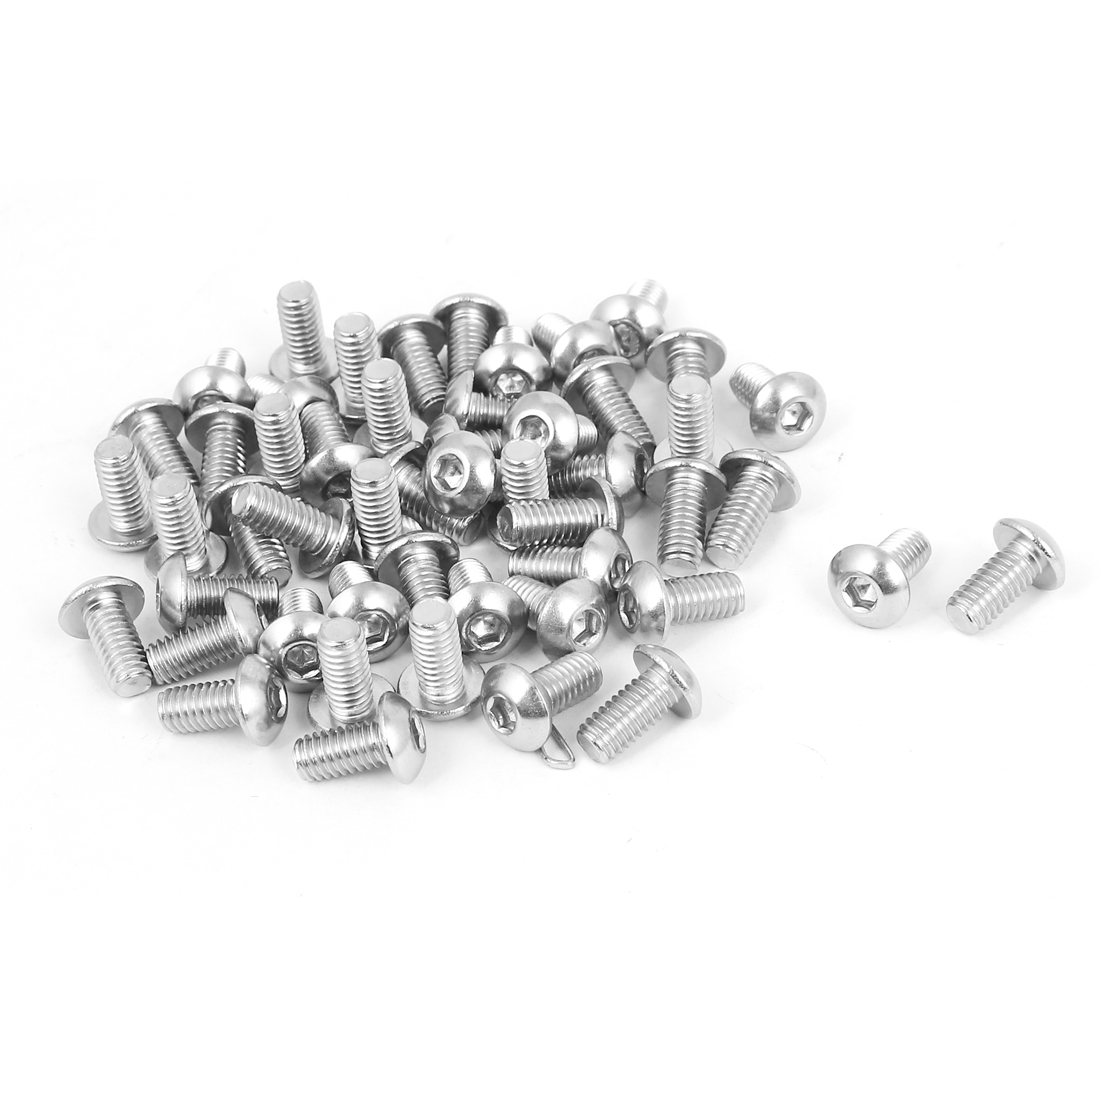 M4 x 8mm Full Thread Button Head Socket Cap Screw Silver Tone 50 Pcs